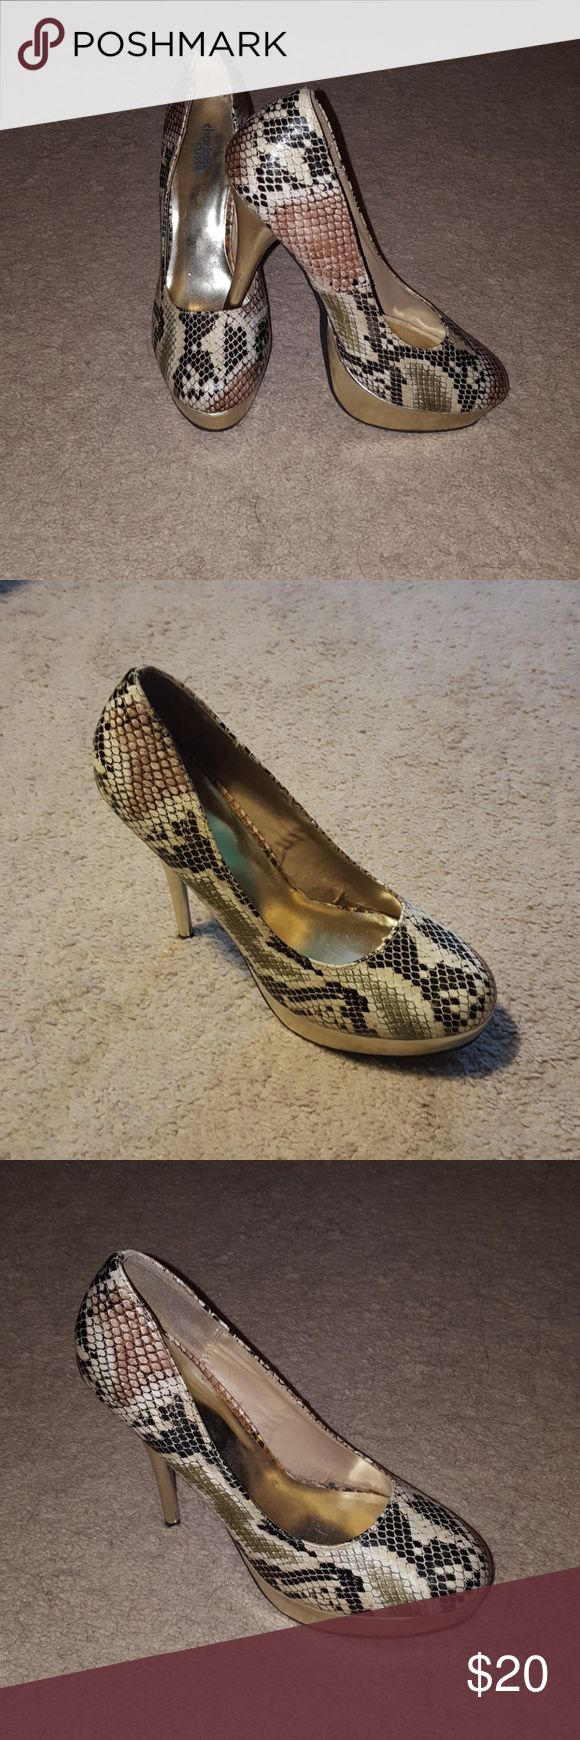 Charlotte Russe heels Faux snake skin heels 6' FEW SCUFFS you can barely see. Charlotte Russe Shoes Heels